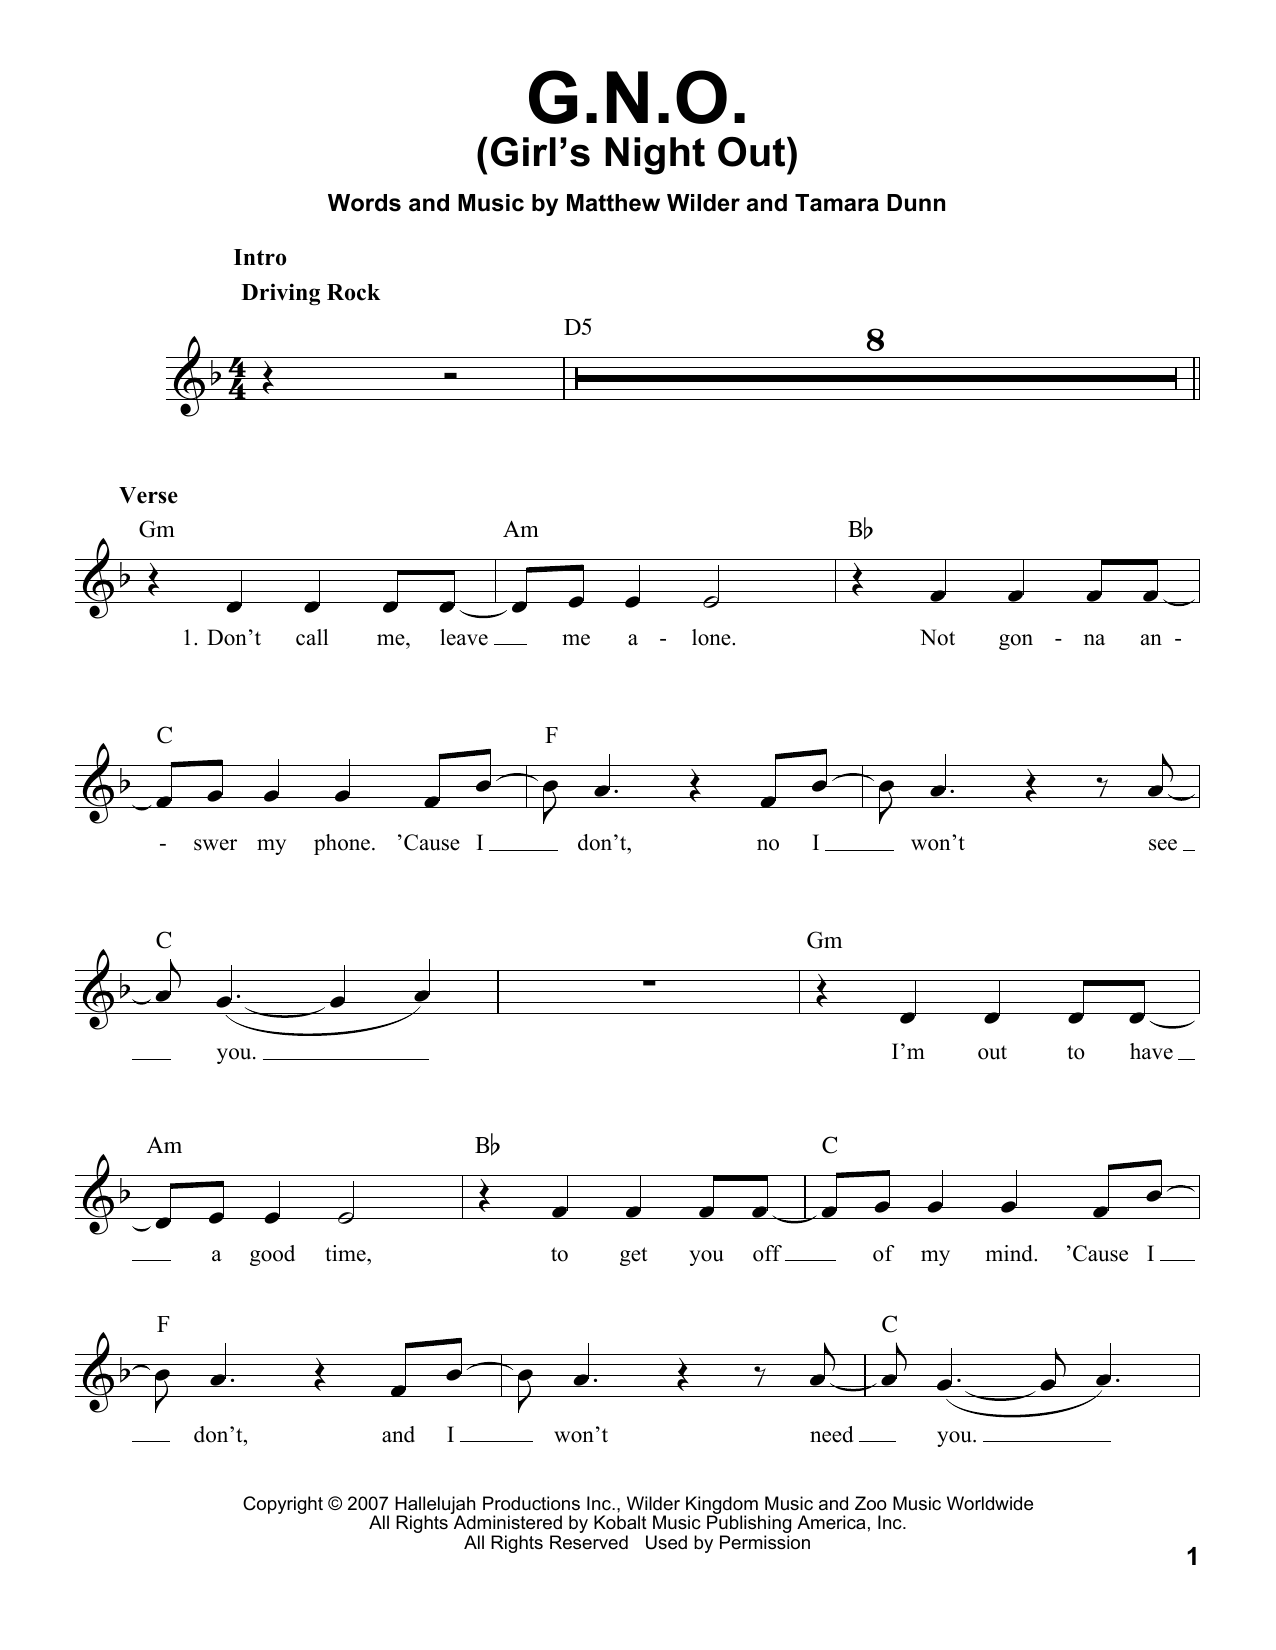 Hannah Montana G.N.O. (Girl's Night Out) sheet music notes and chords. Download Printable PDF.